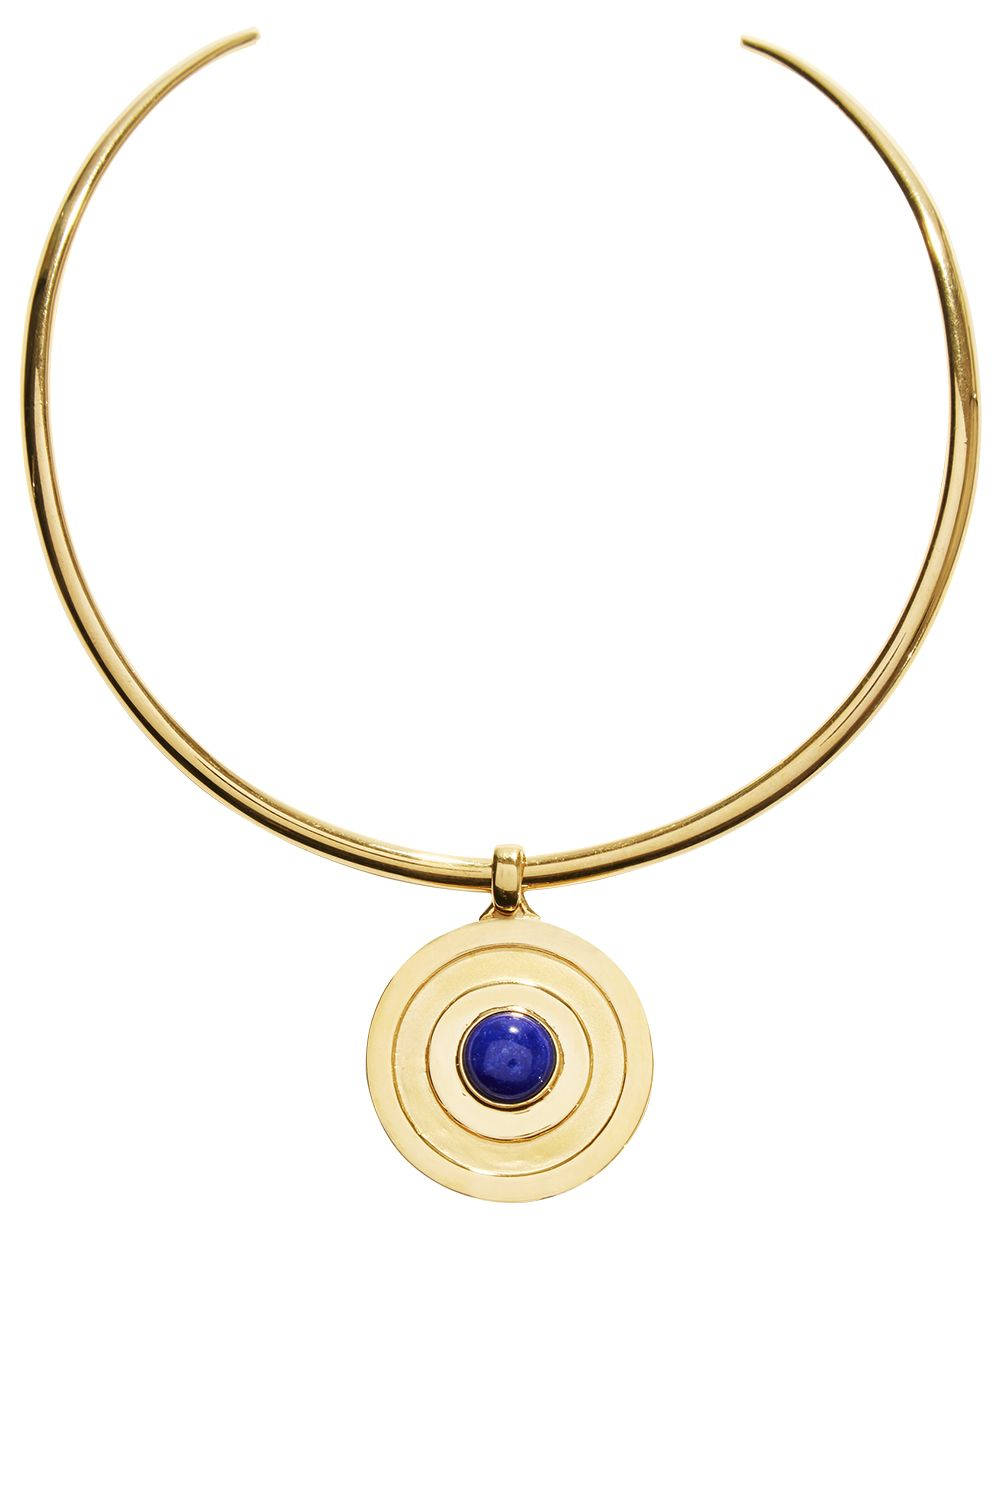 "<p><strong data-redactor-tag=""strong"" data-verified=""redactor"">Lapis Jennifer Alfano</strong> choker, $675,&nbsp&#x3B;<a href=""http://www.jenniferalfano.com/"" target=""_blank"">jenniferalfano.com</a>.<span class=""redactor-invisible-space"" data-verified=""redactor"" data-redactor-tag=""span"" data-redactor-class=""redactor-invisible-space""></span></p>"